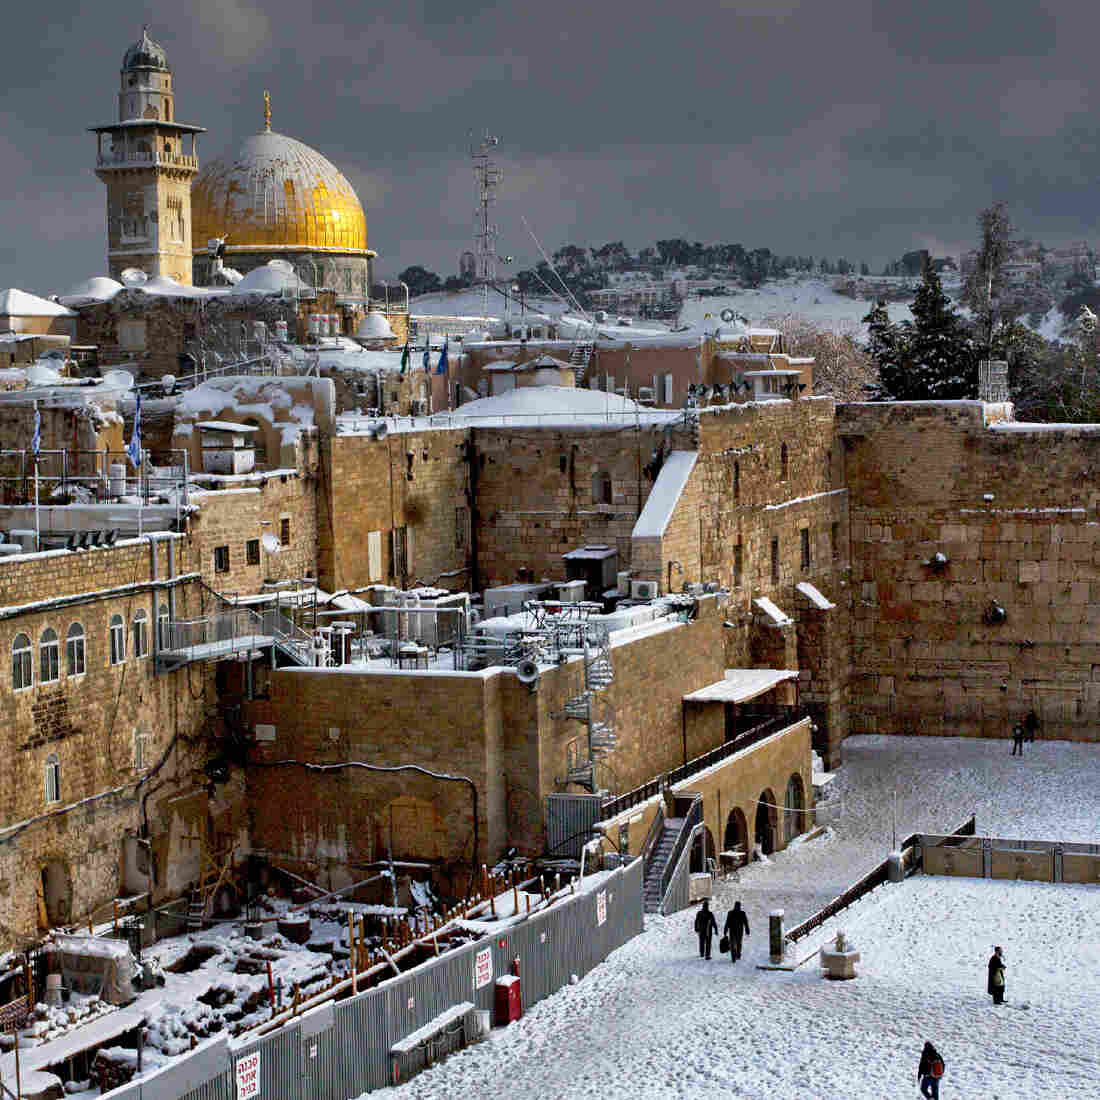 The gilded Dome of the Rock is part of the most important Muslim holy site in Jerusalem, while the Western Wall, in the midground on the right, is the holiest place for Jewish prayer. The photo was taken following a rare snowstorm in Jerusalem in December 2013.